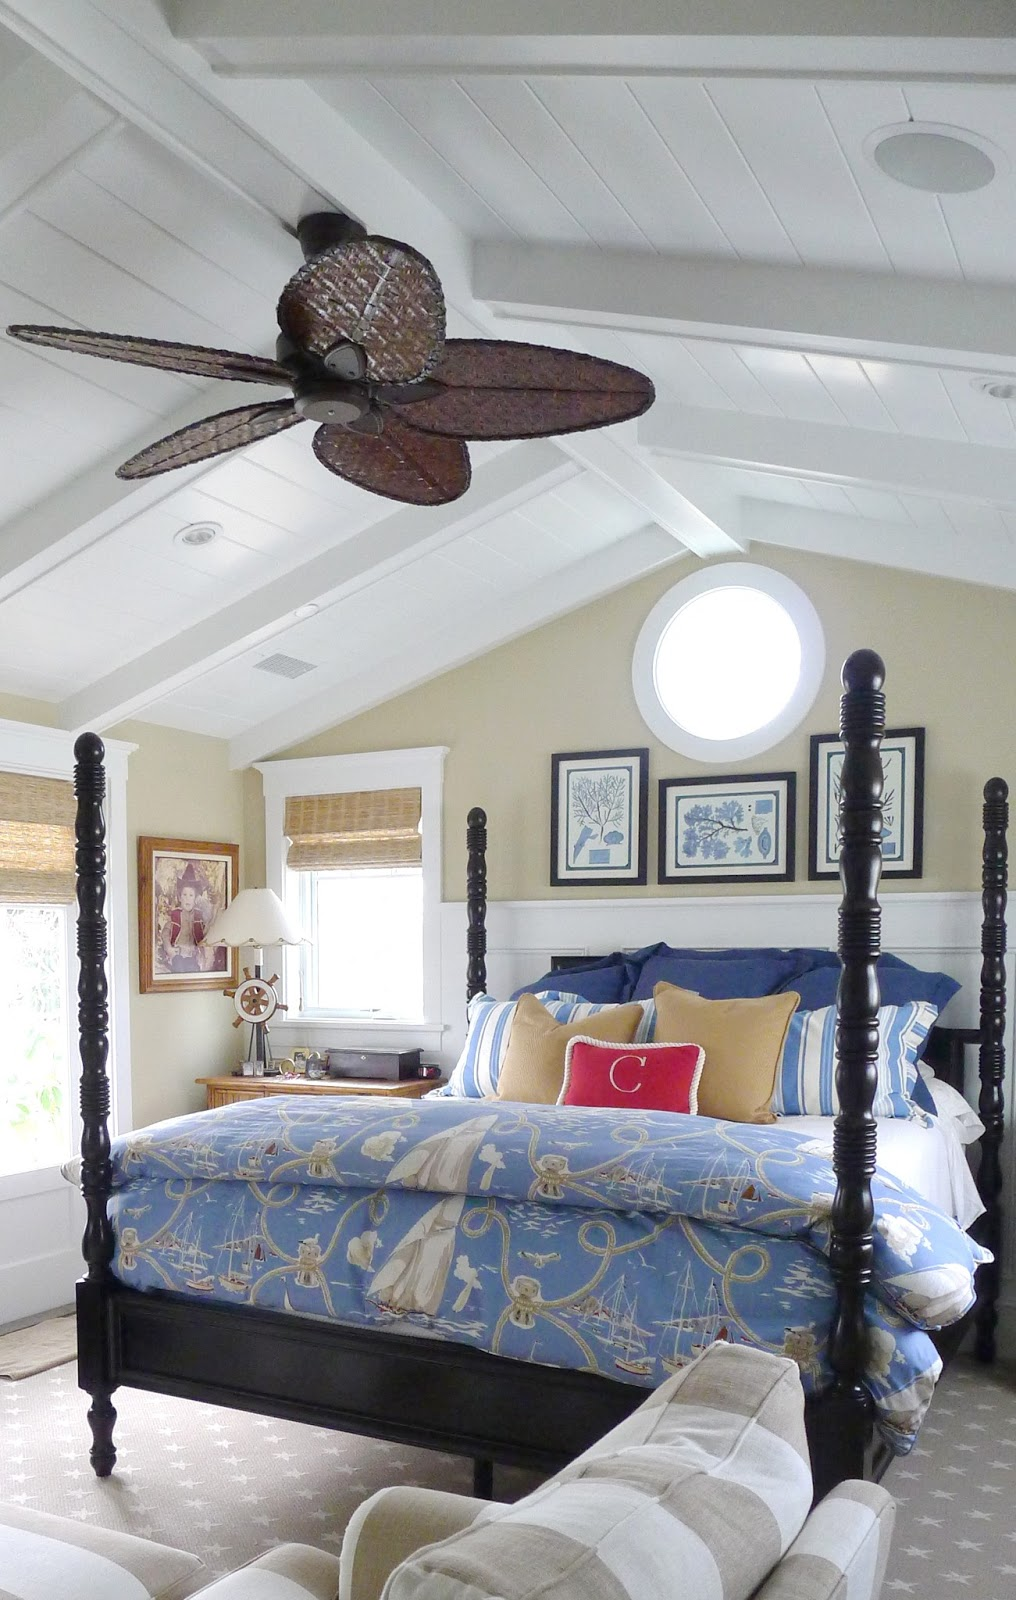 Coastal Bedroom: Ciao! Newport Beach: A Local Home With A Nantucket Vibe